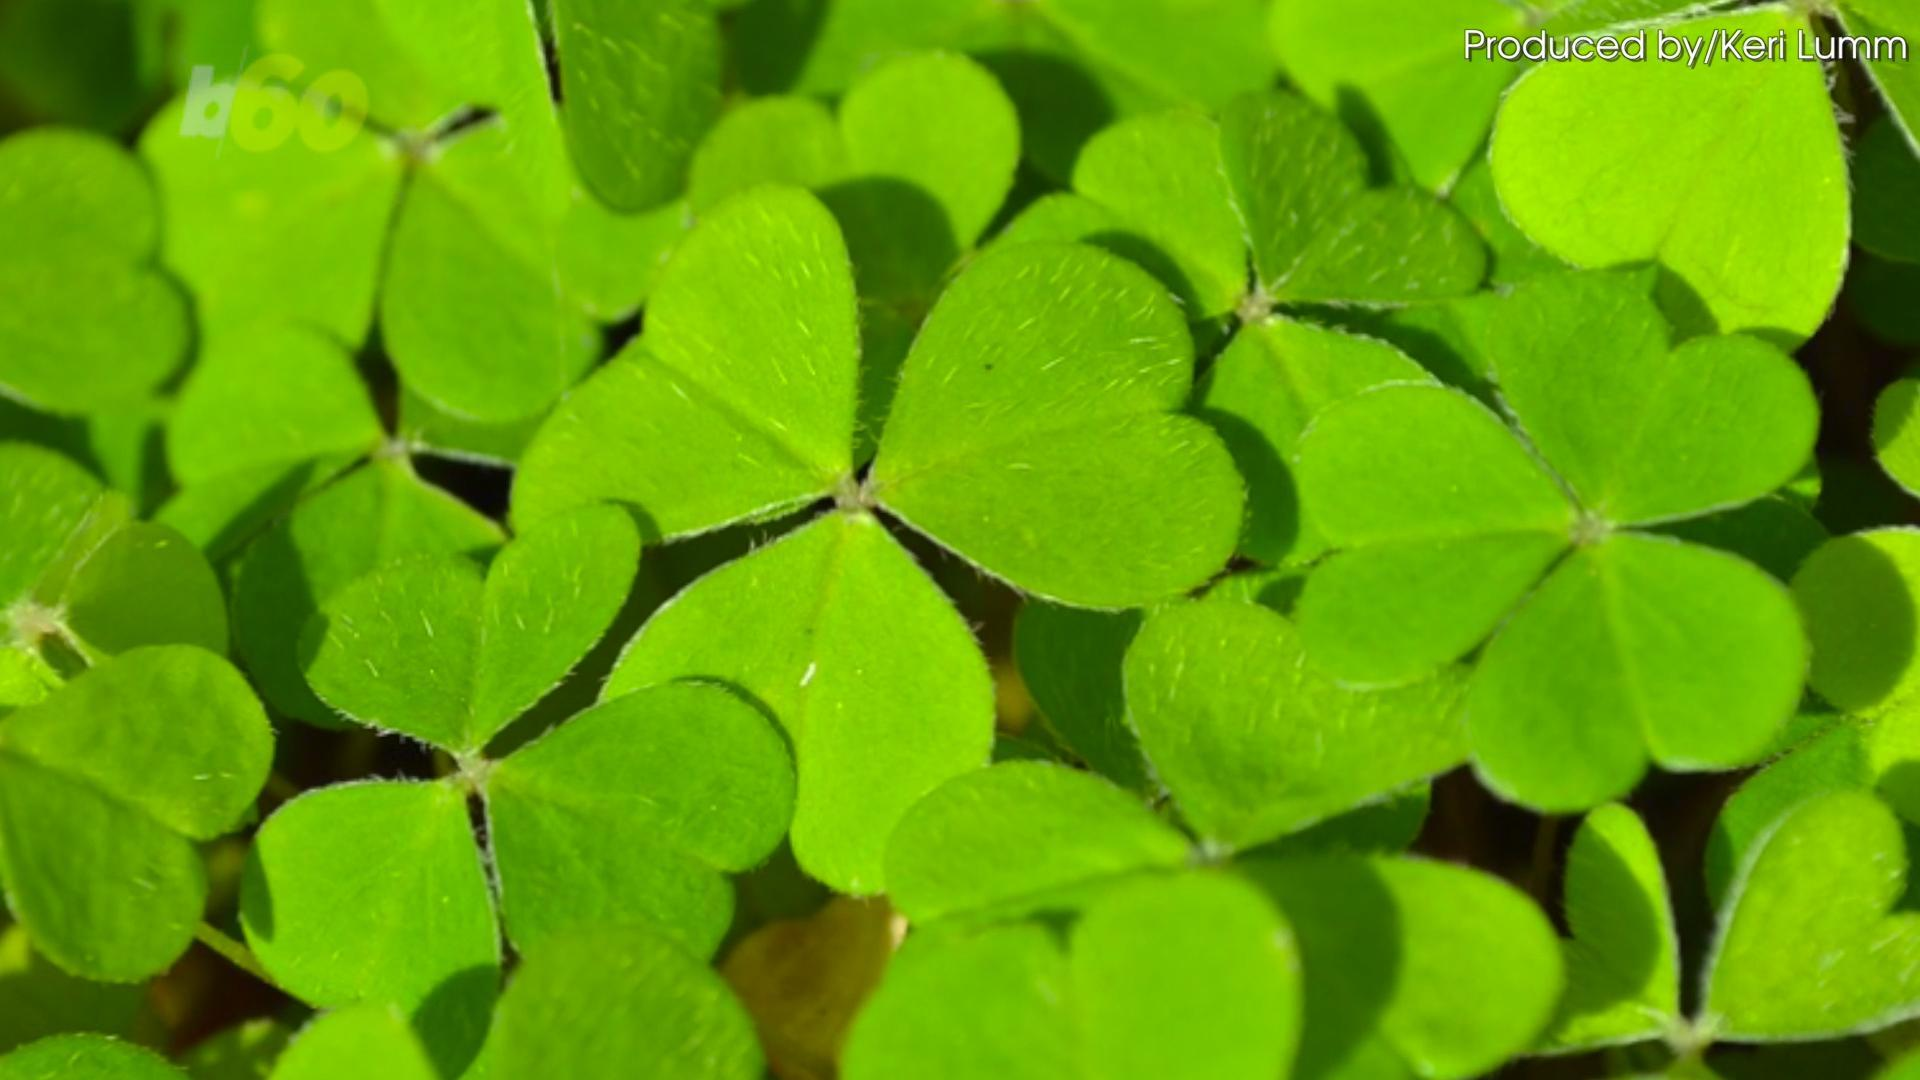 Naturally Green Foods for Your St. Patrick's Day Menu